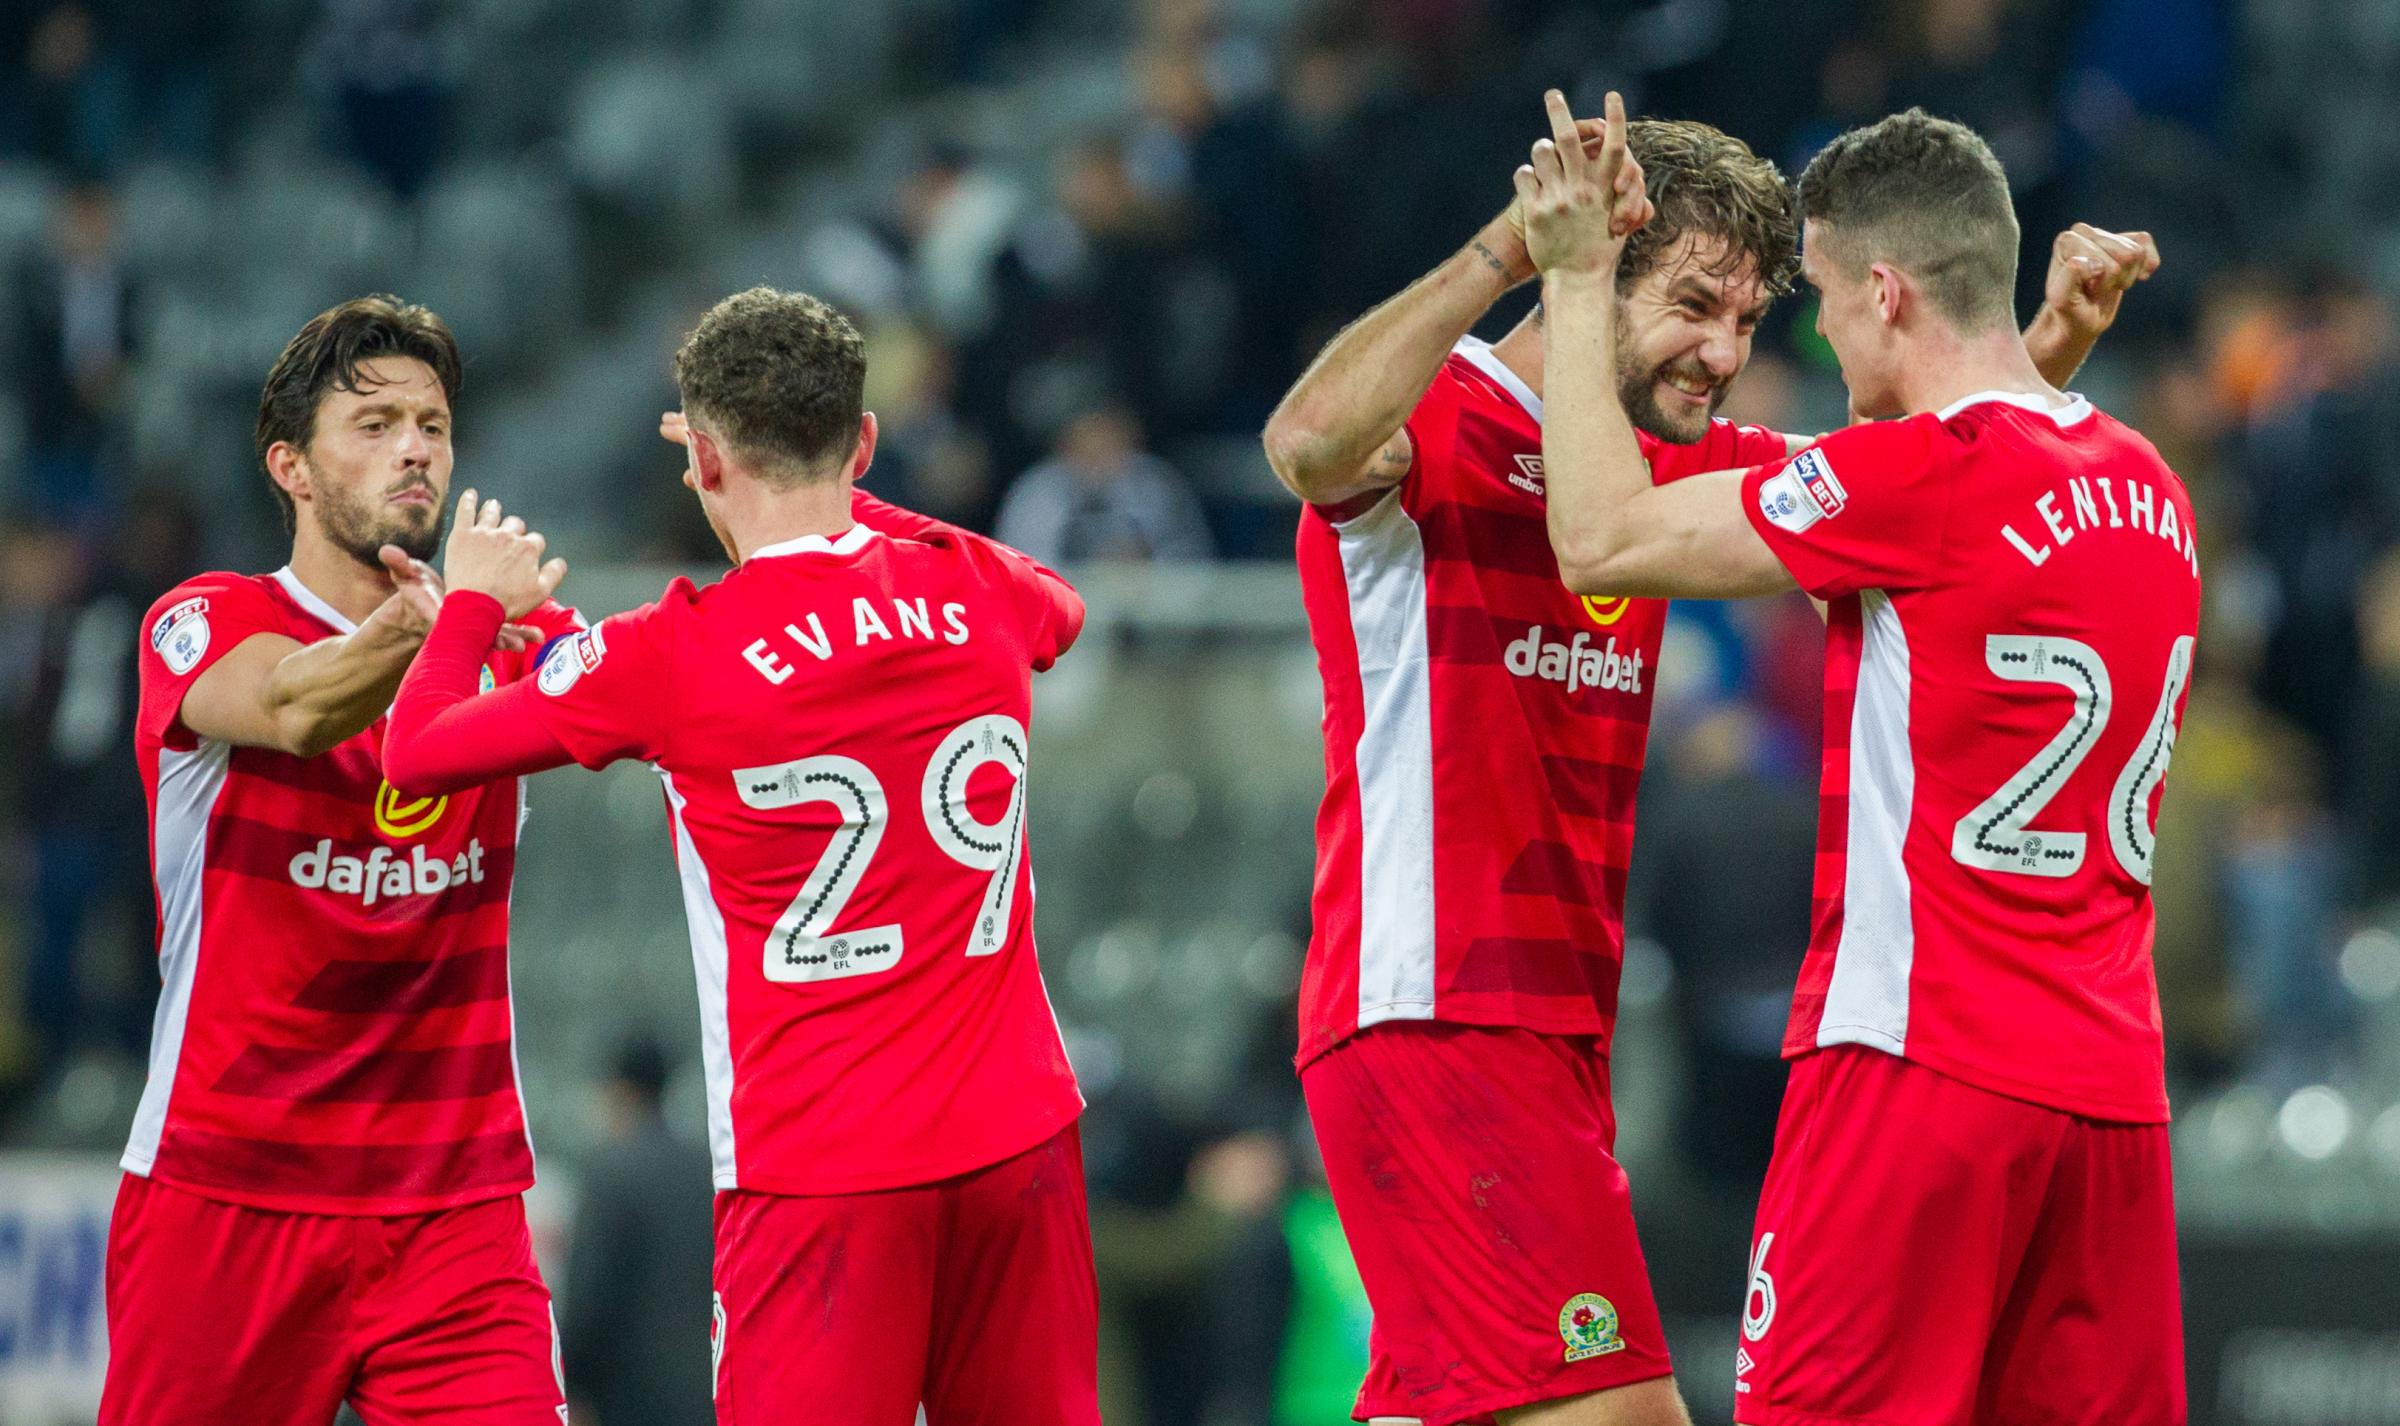 Blackburn Rovers' players, from left to right, Jason Lowe, Corry Evans, Charlie Mulgrew and Darragh Lenihan, celebrate after the final whistle